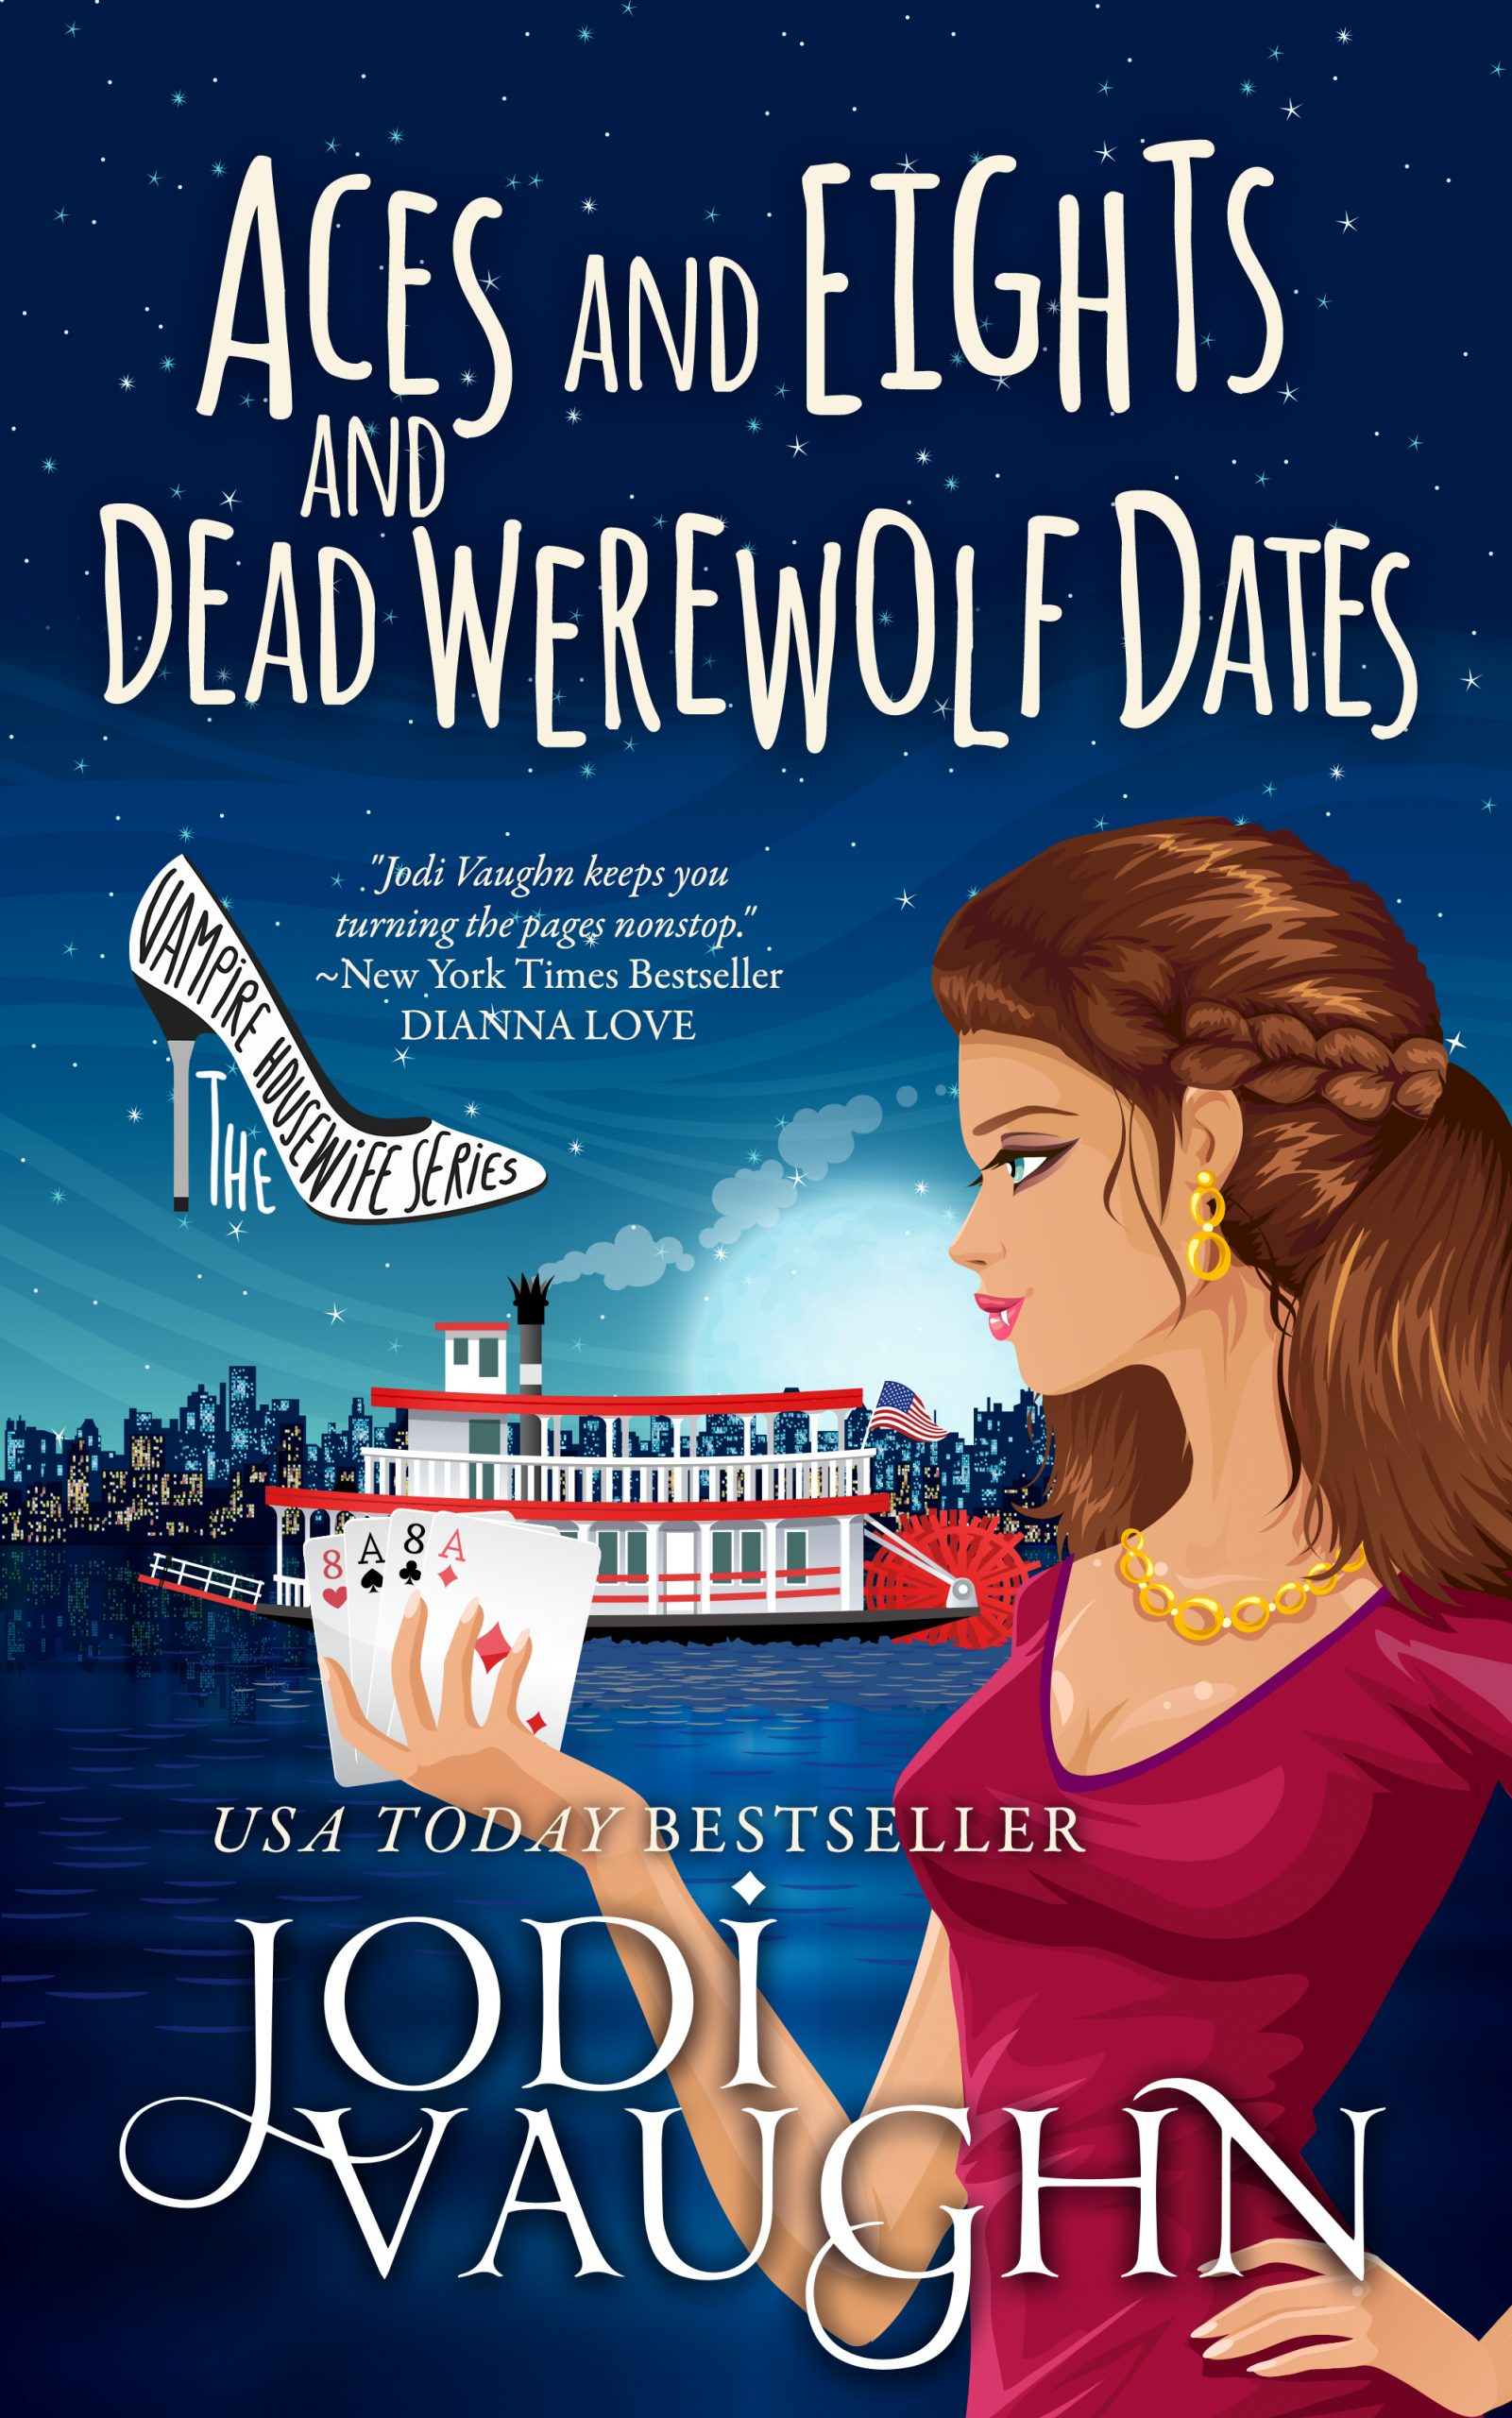 Aces and Eights and Dead Werewolf Dates